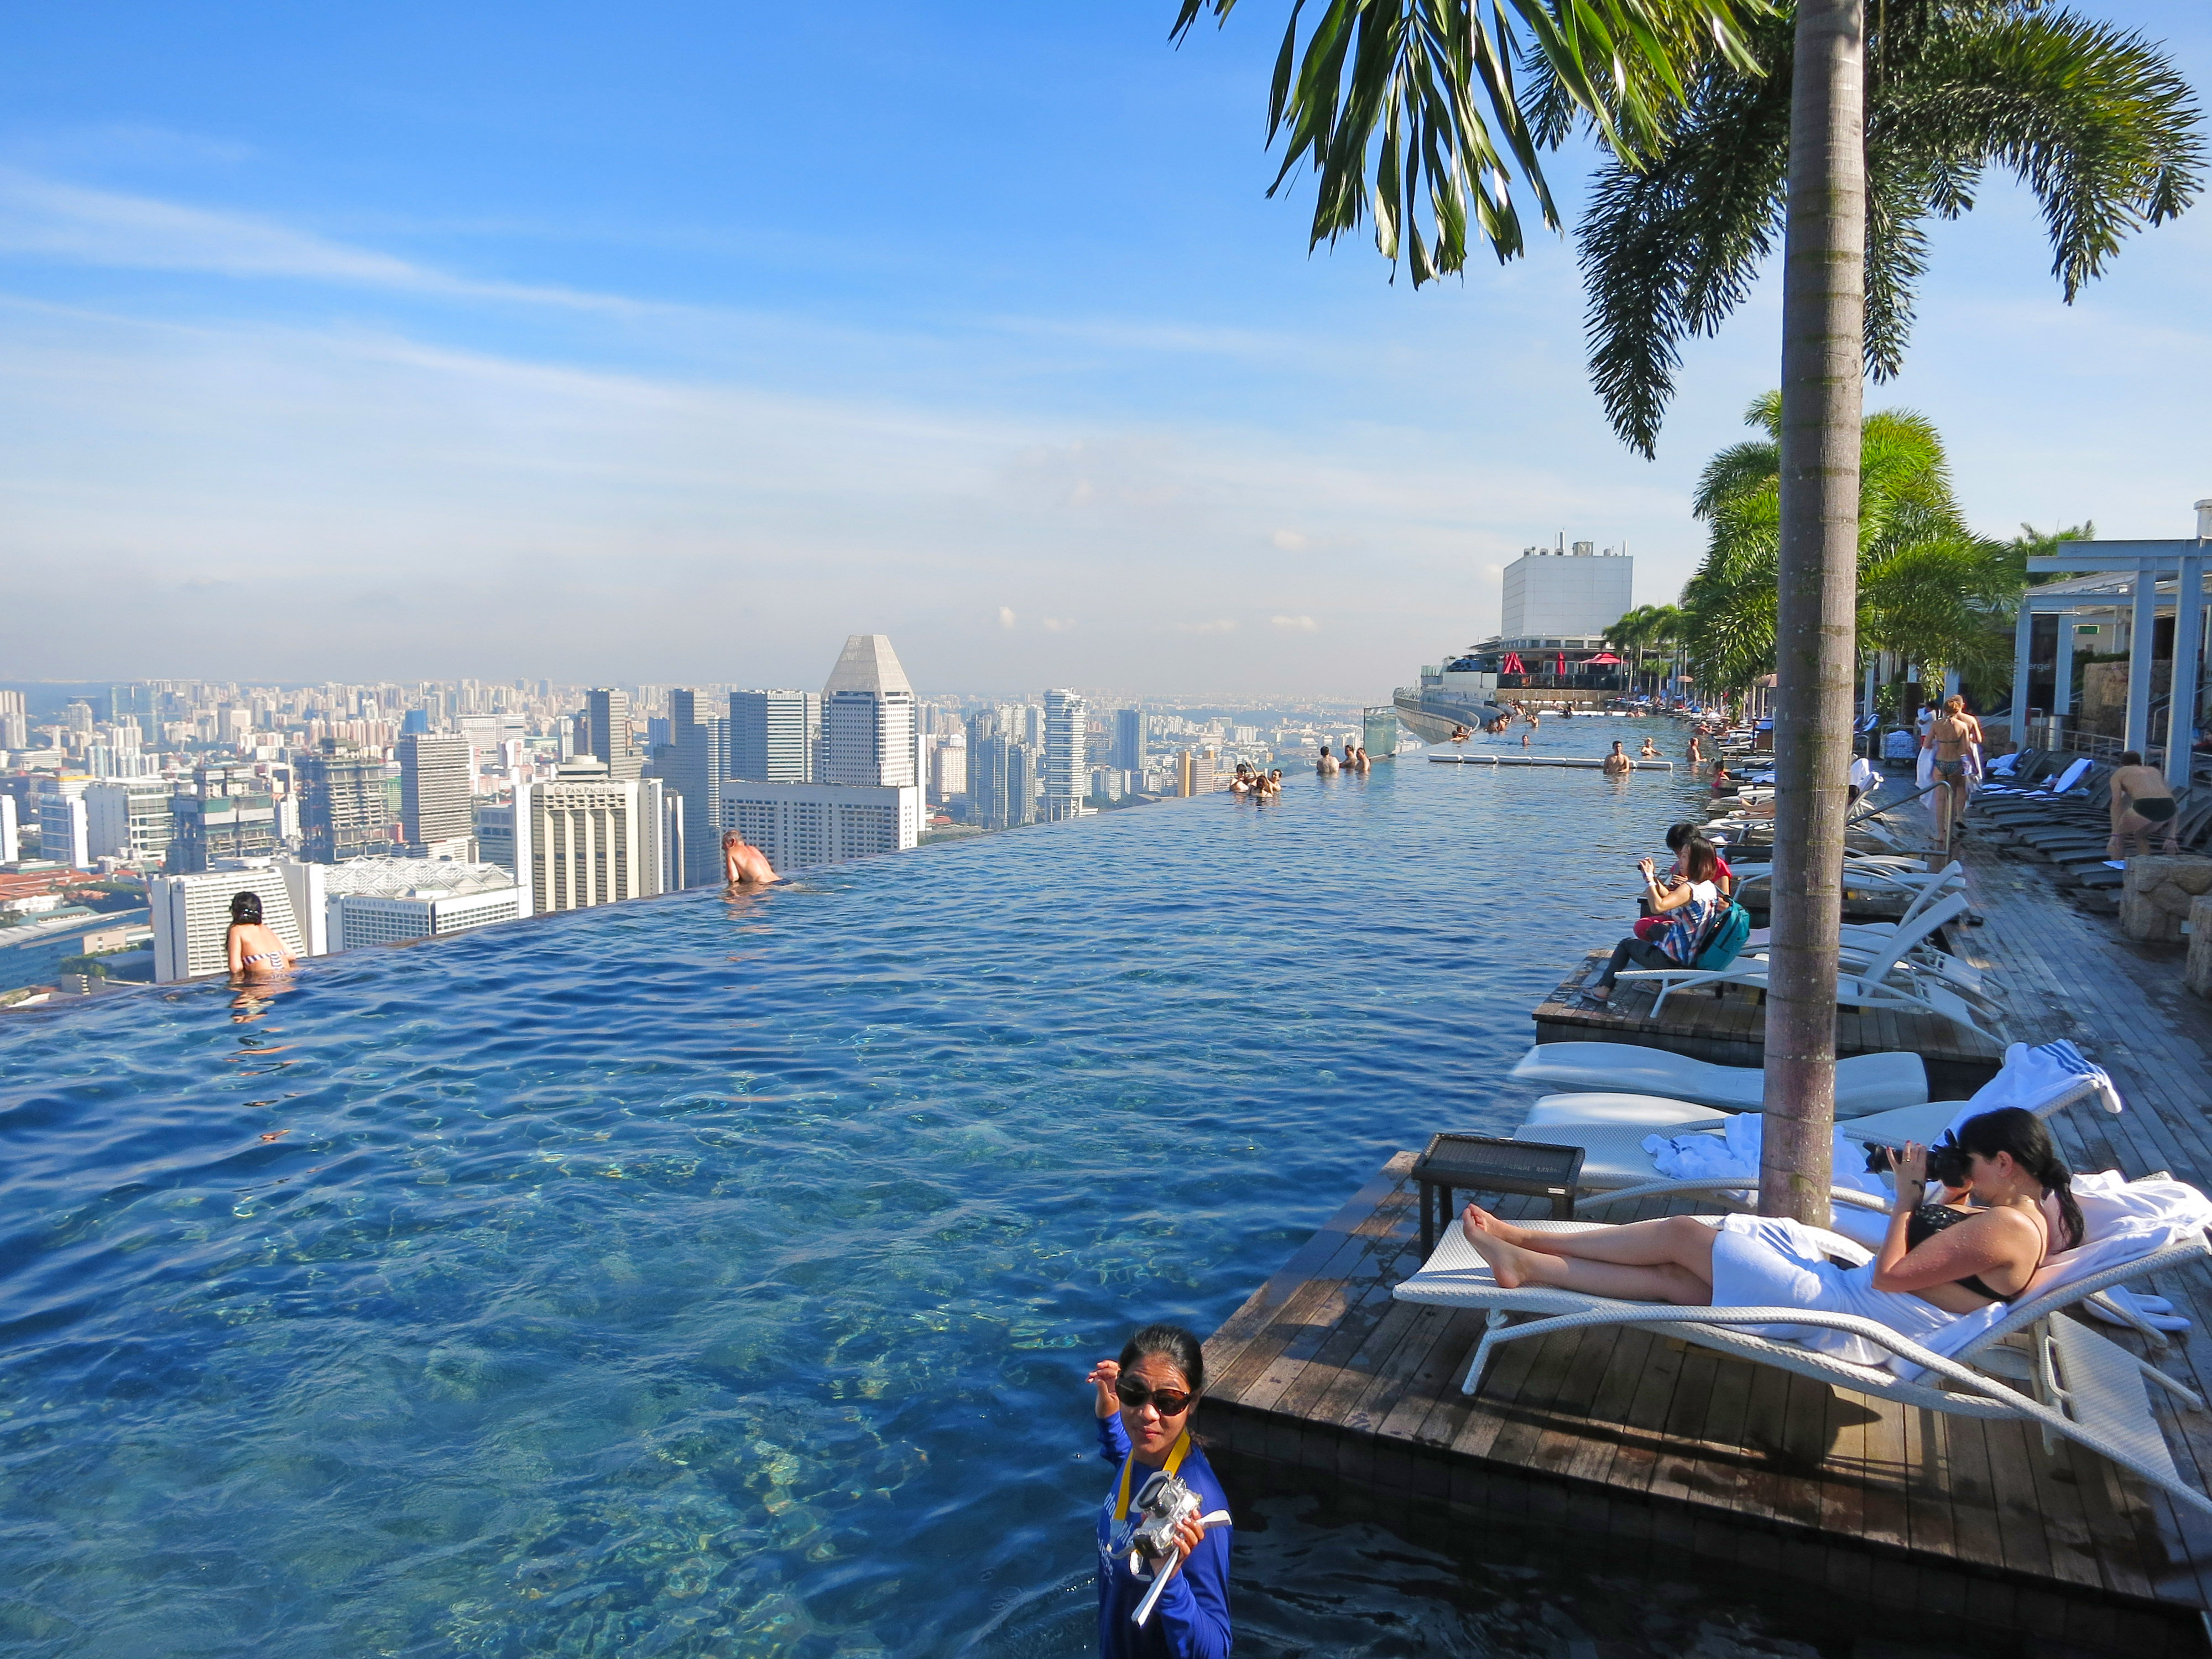 2013 maldives and singapore trip - Singapore marina bay sands infinity pool ...